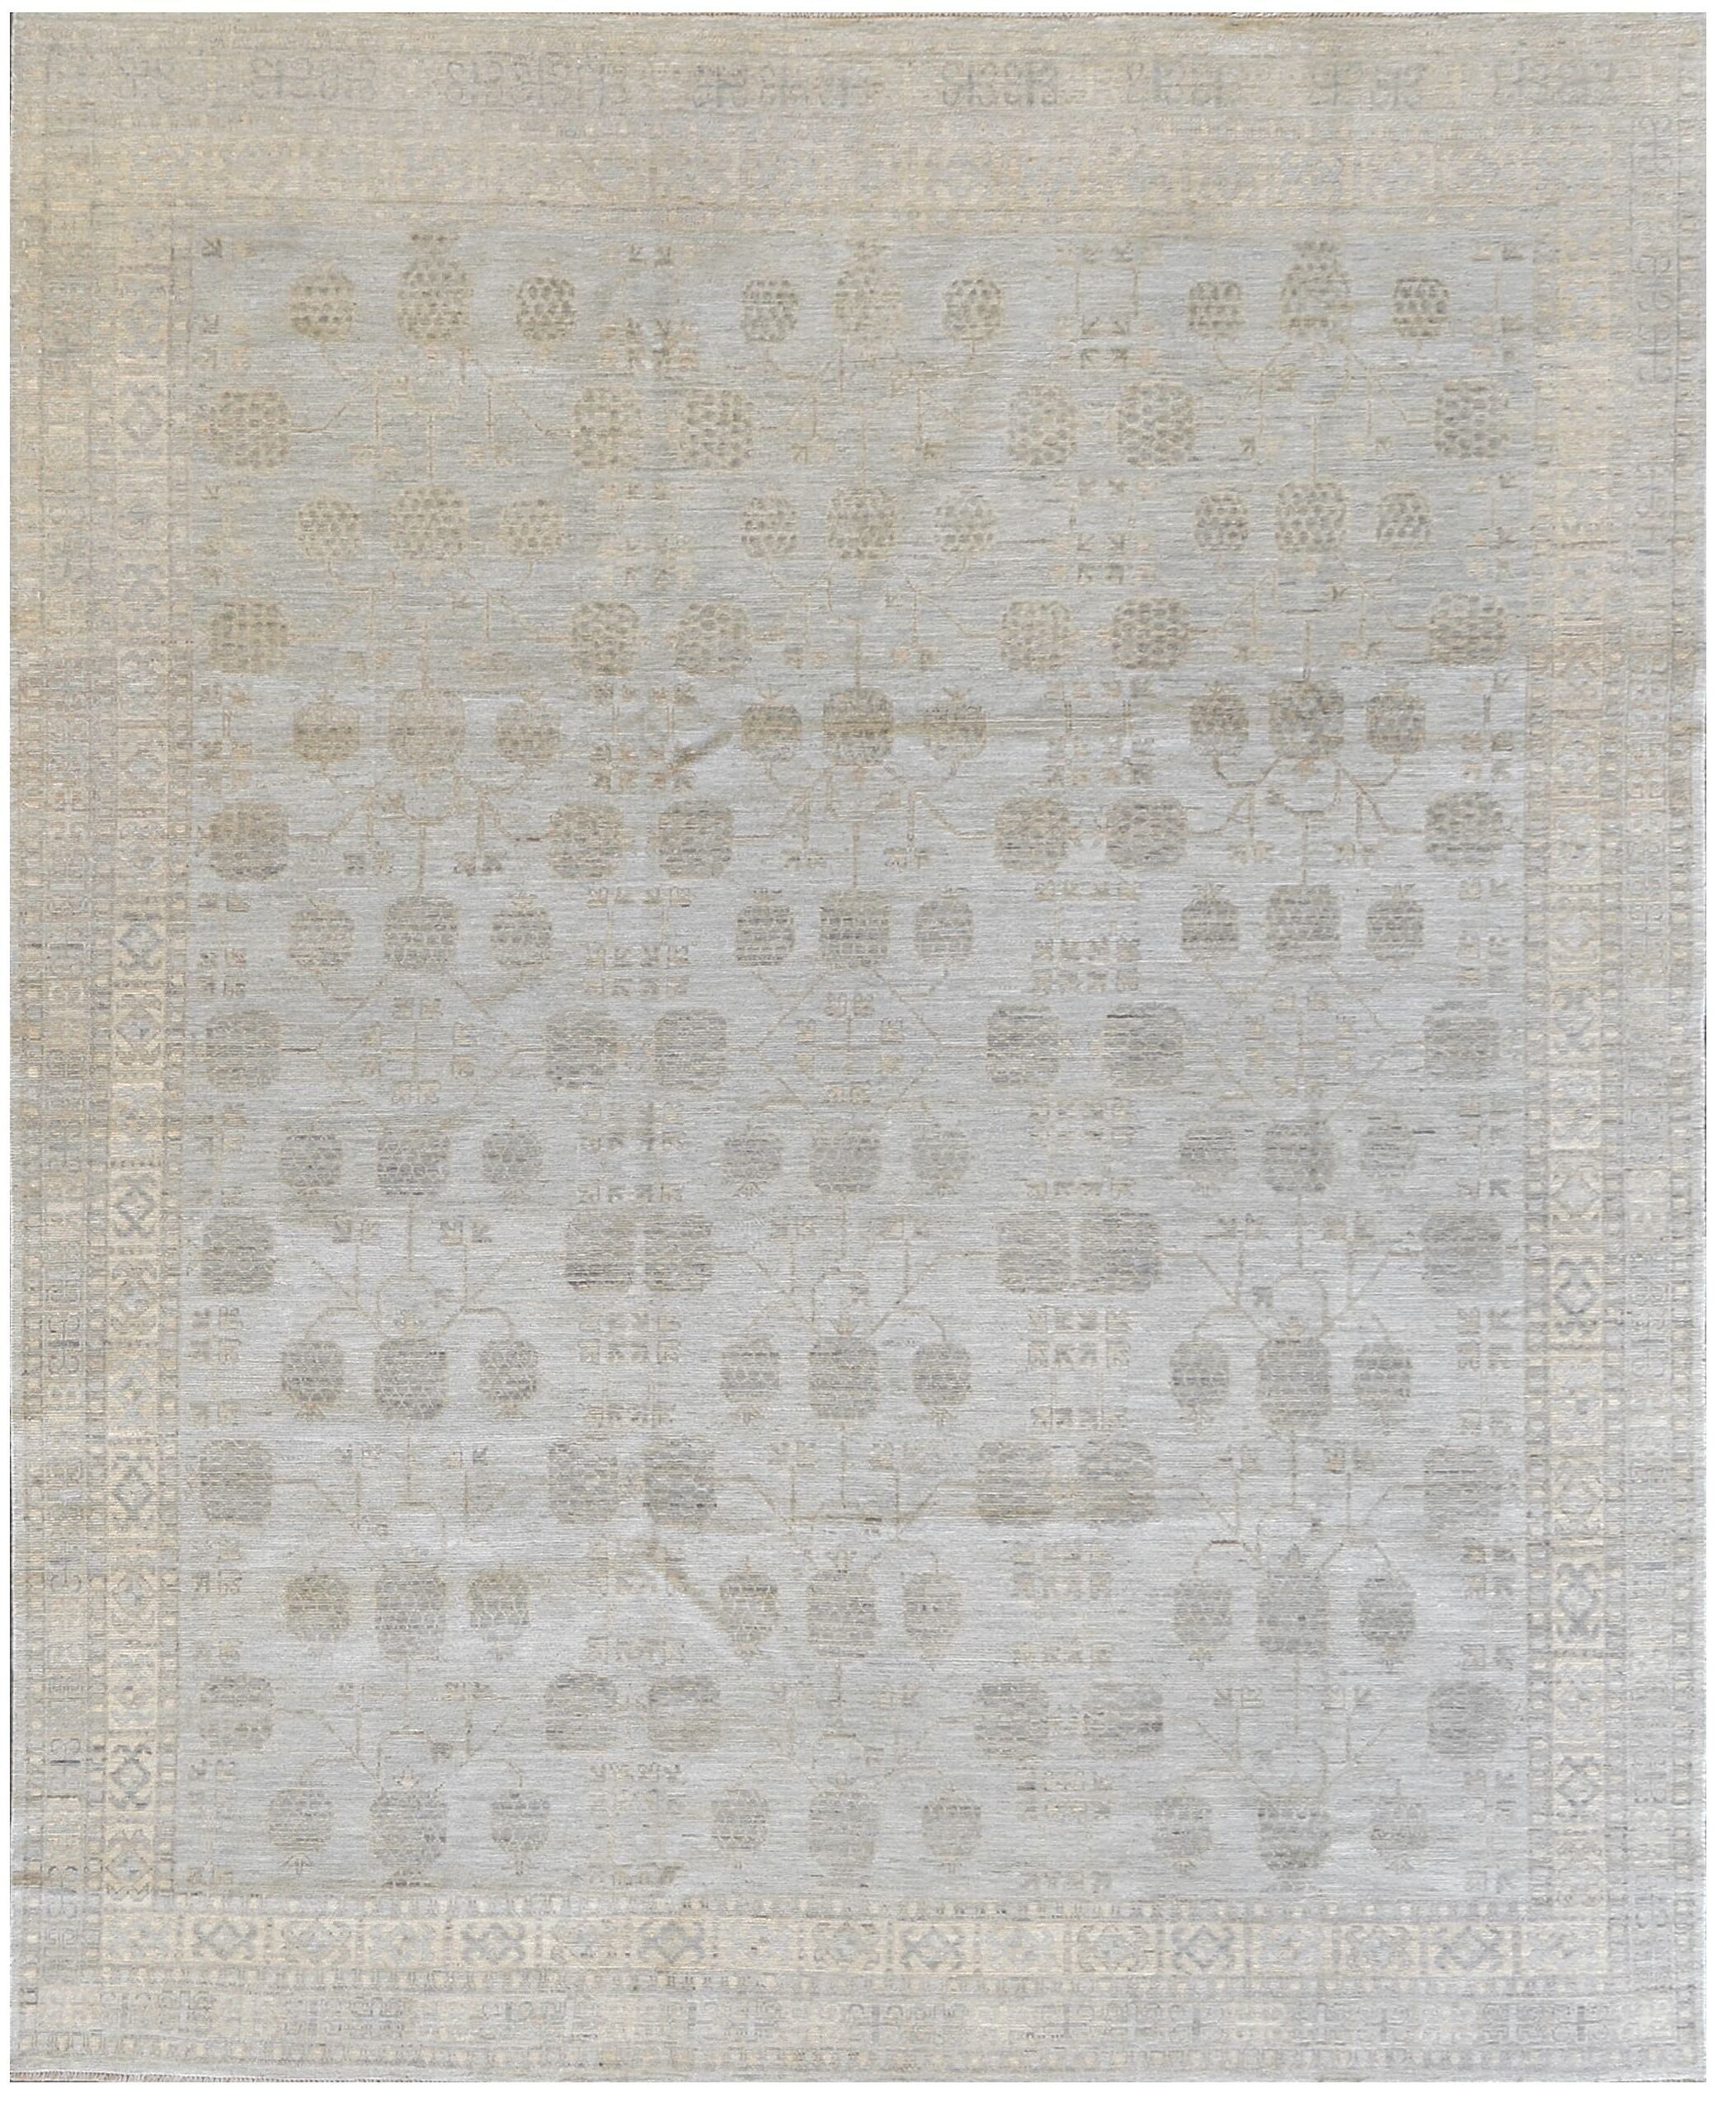 One-of-a-Kind Superb Quality Handwoven Wool Gray Indoor Area Rug